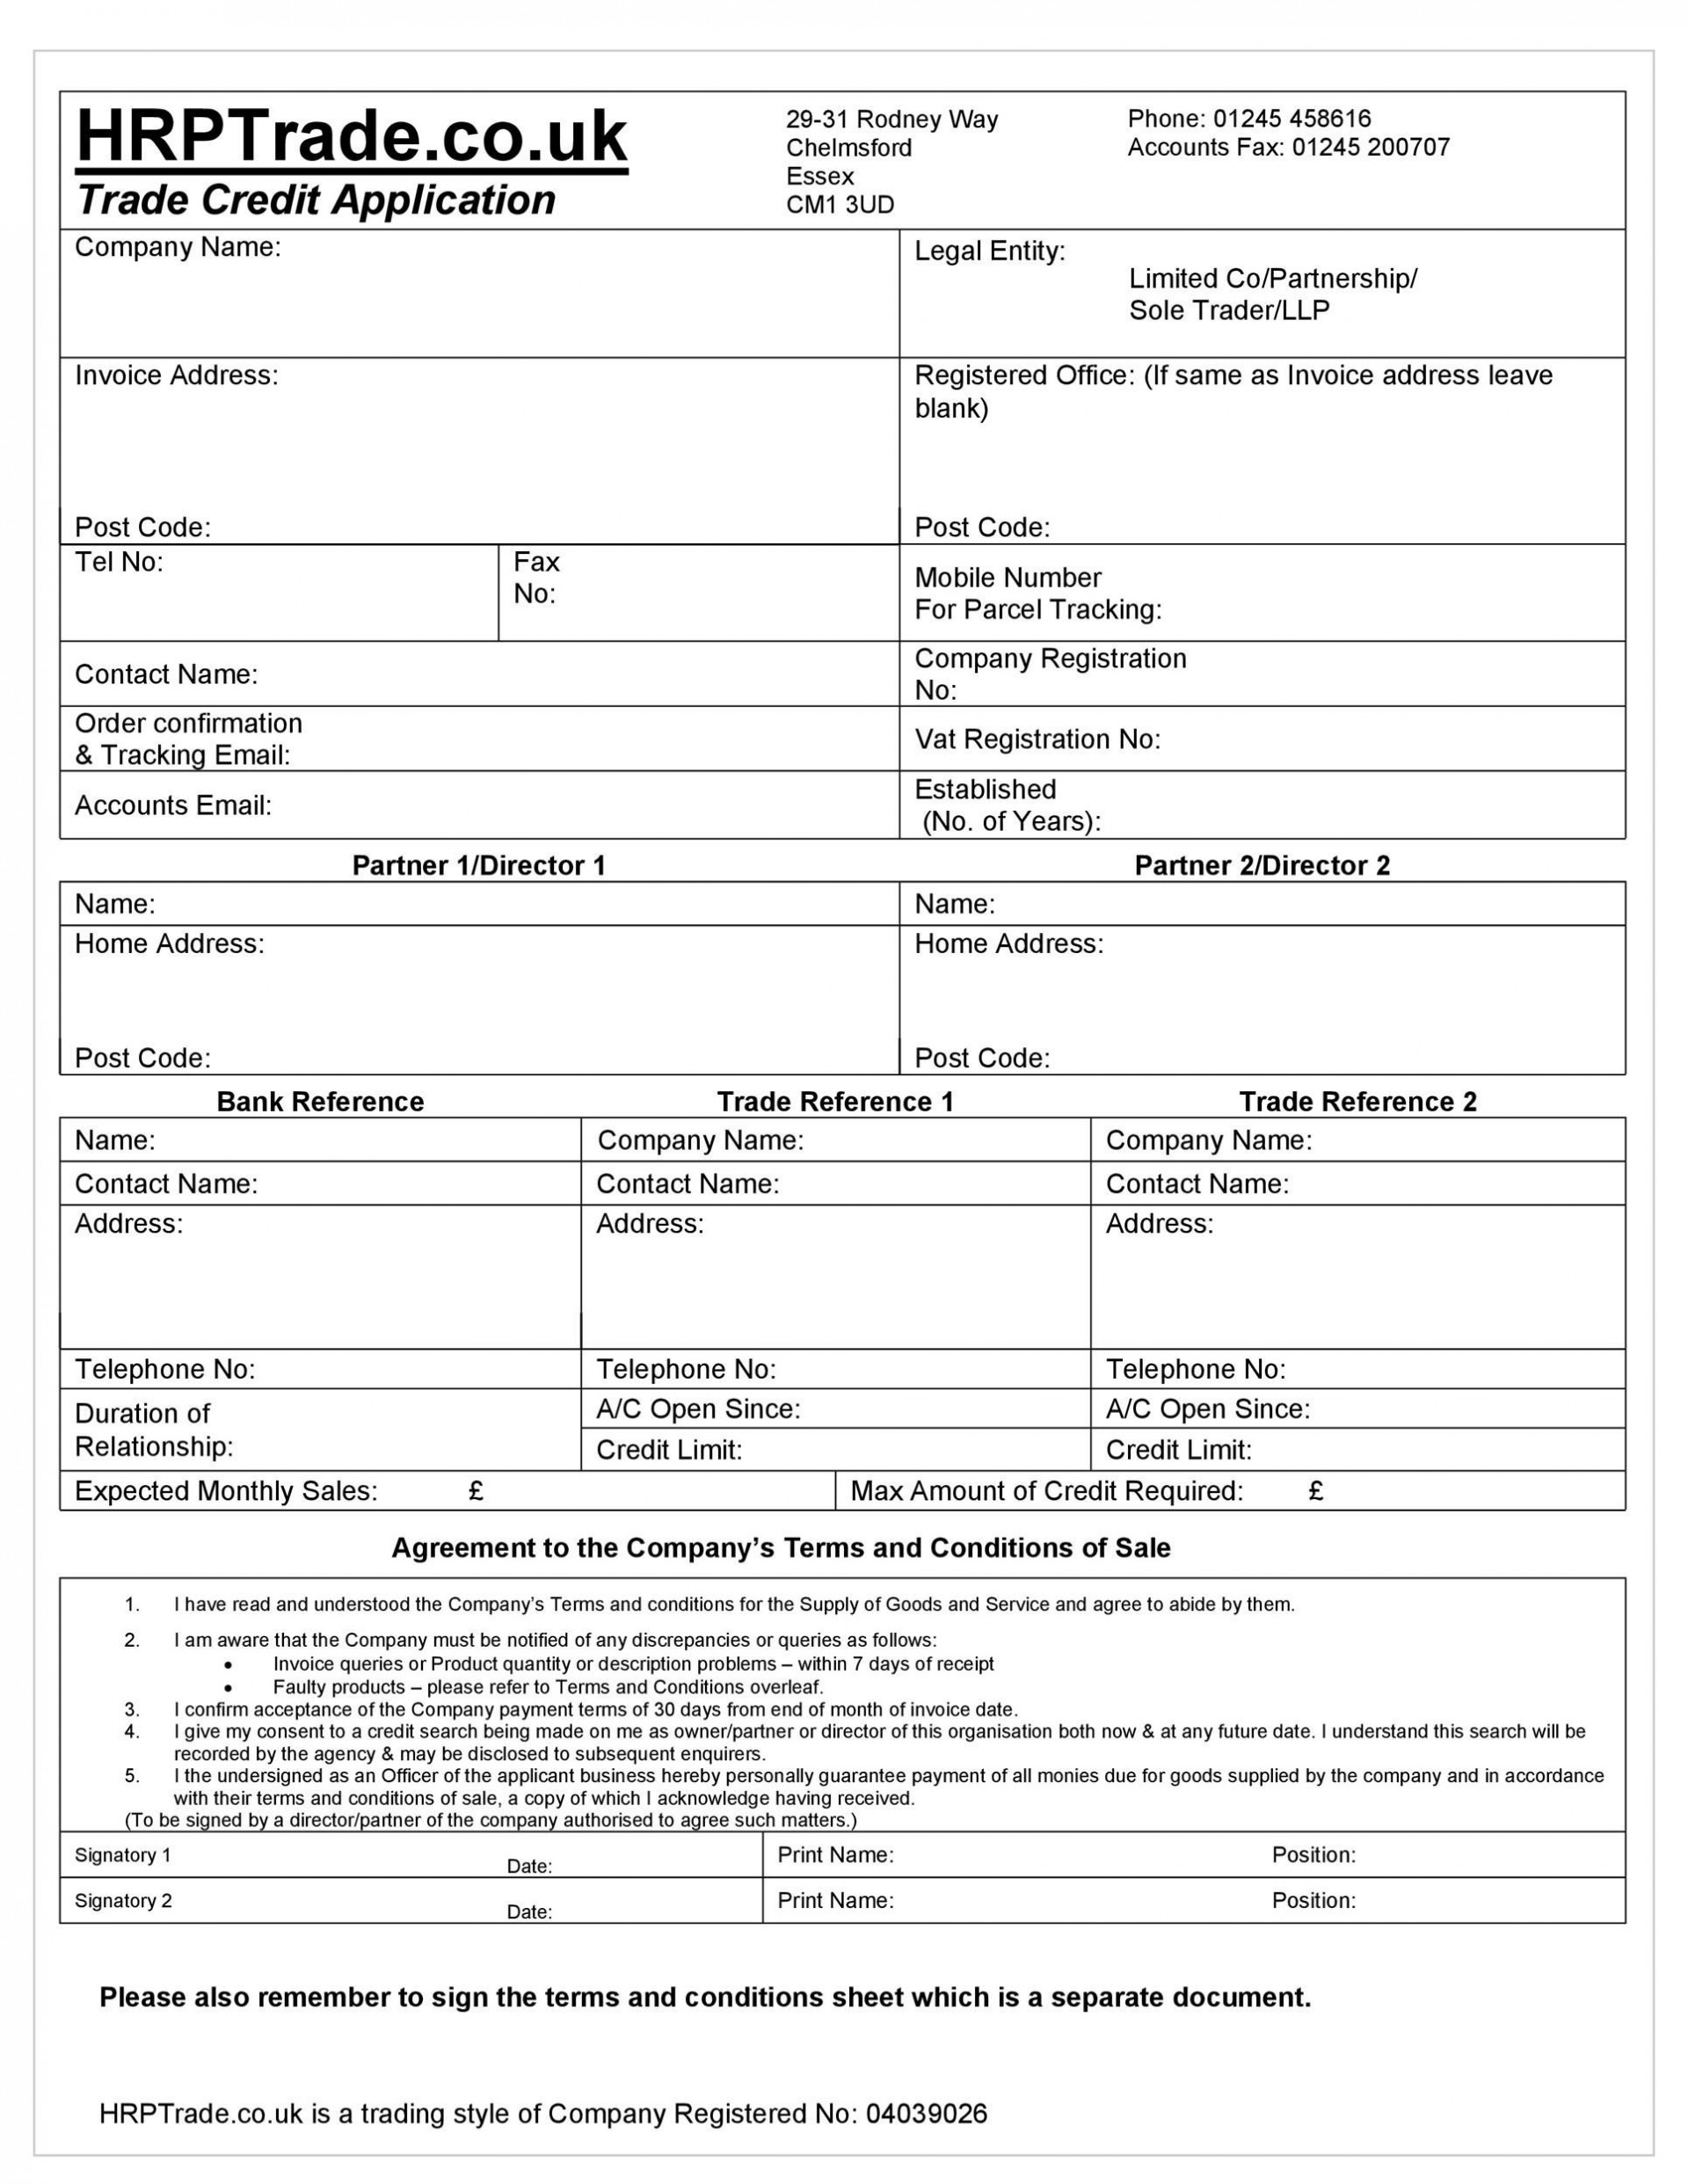 004 Unforgettable New Customer Application Form Template Uk Sample  Account Free1920